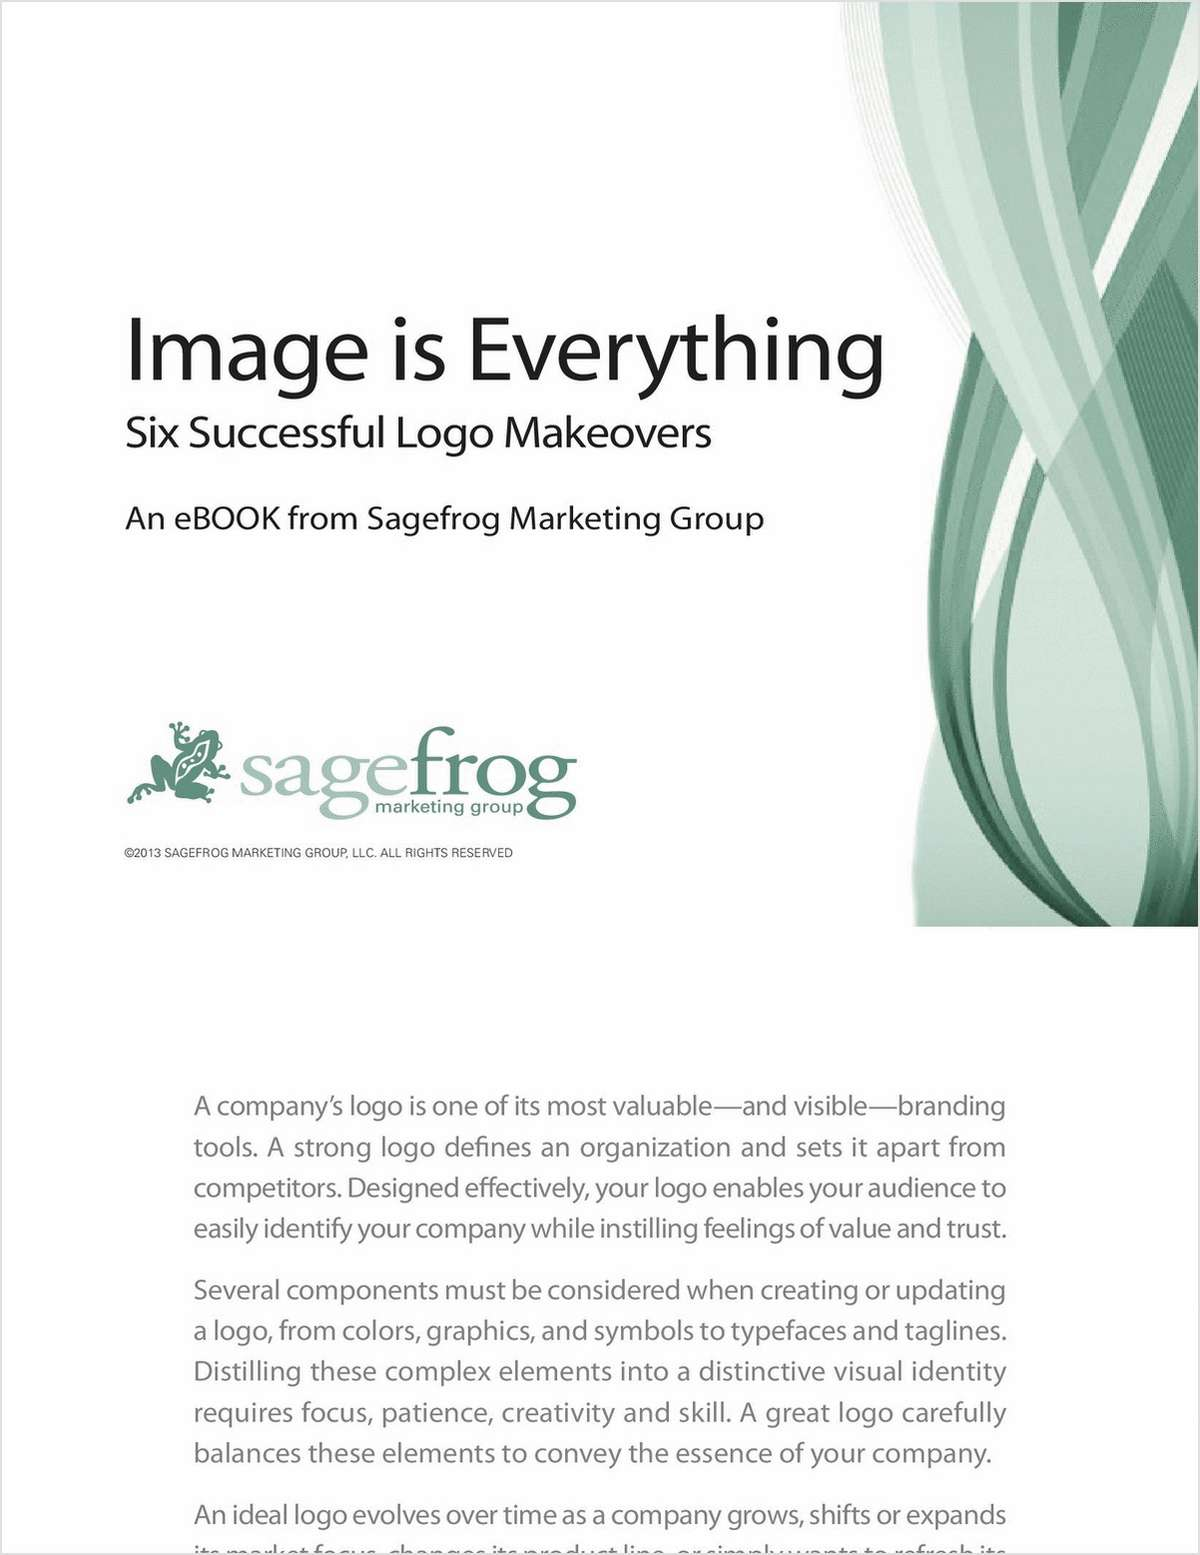 Your Image is Everything: Six Successful Logo Makeovers